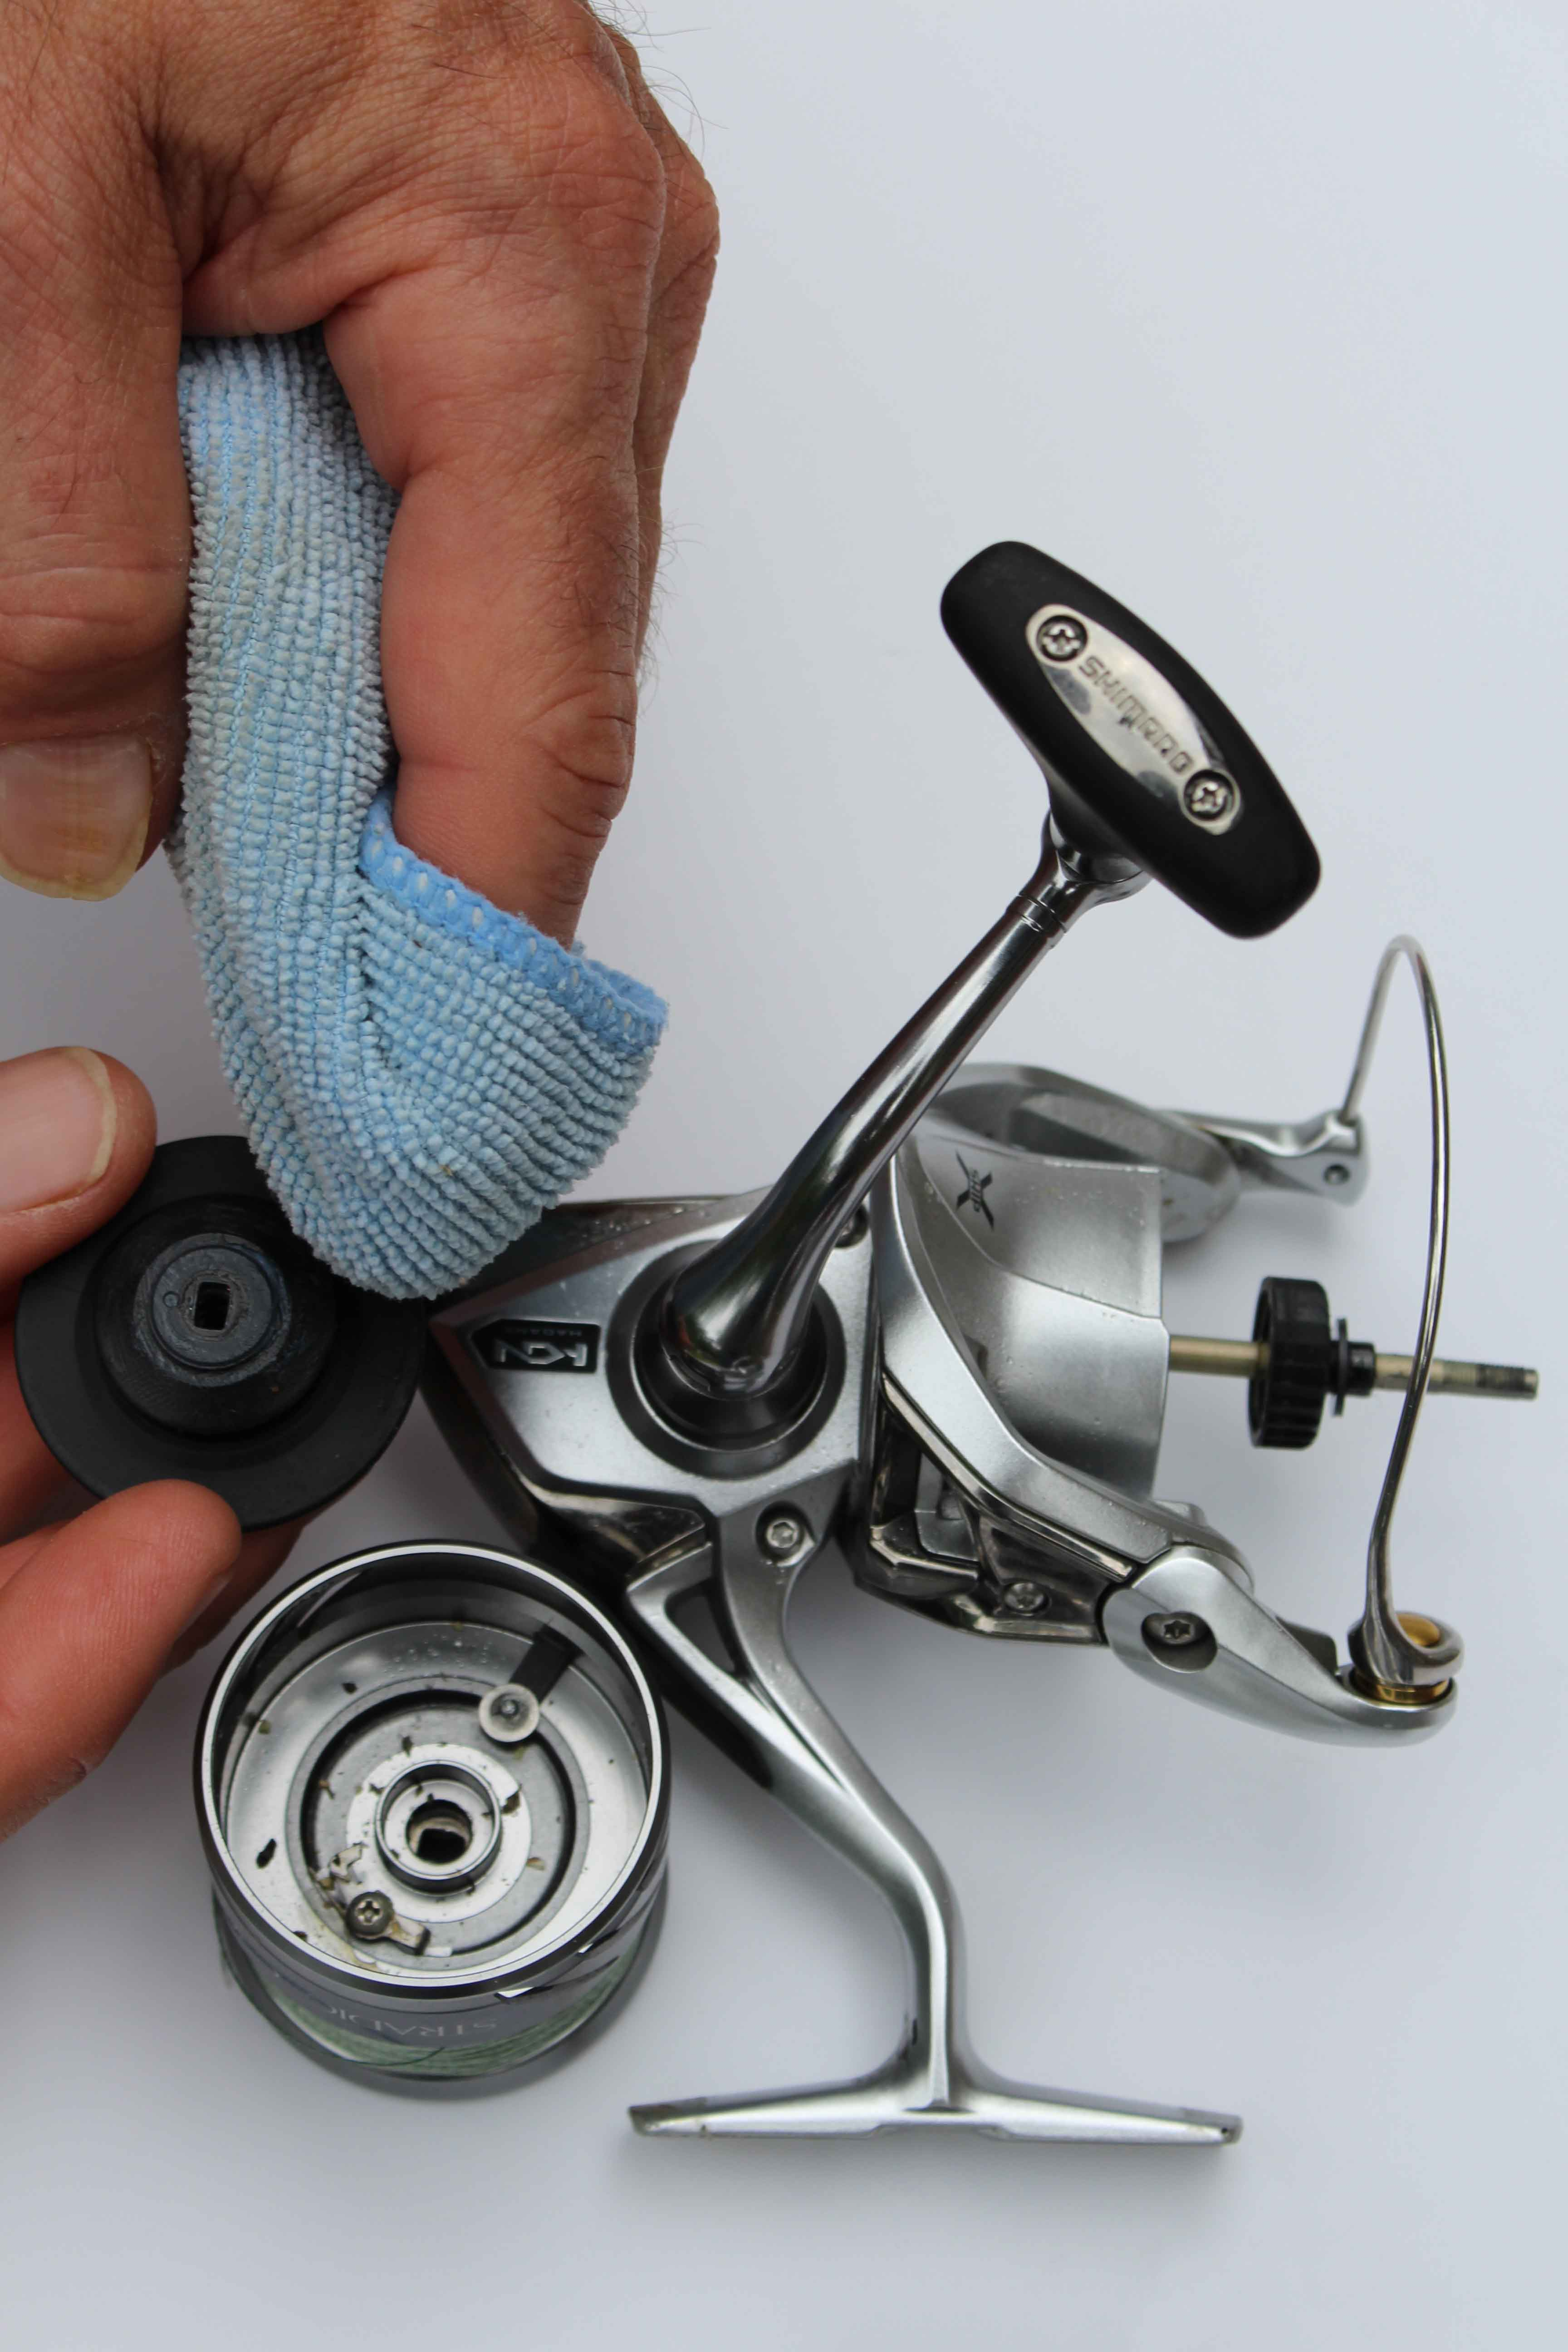 How to Deep Clean a Fishing Reel